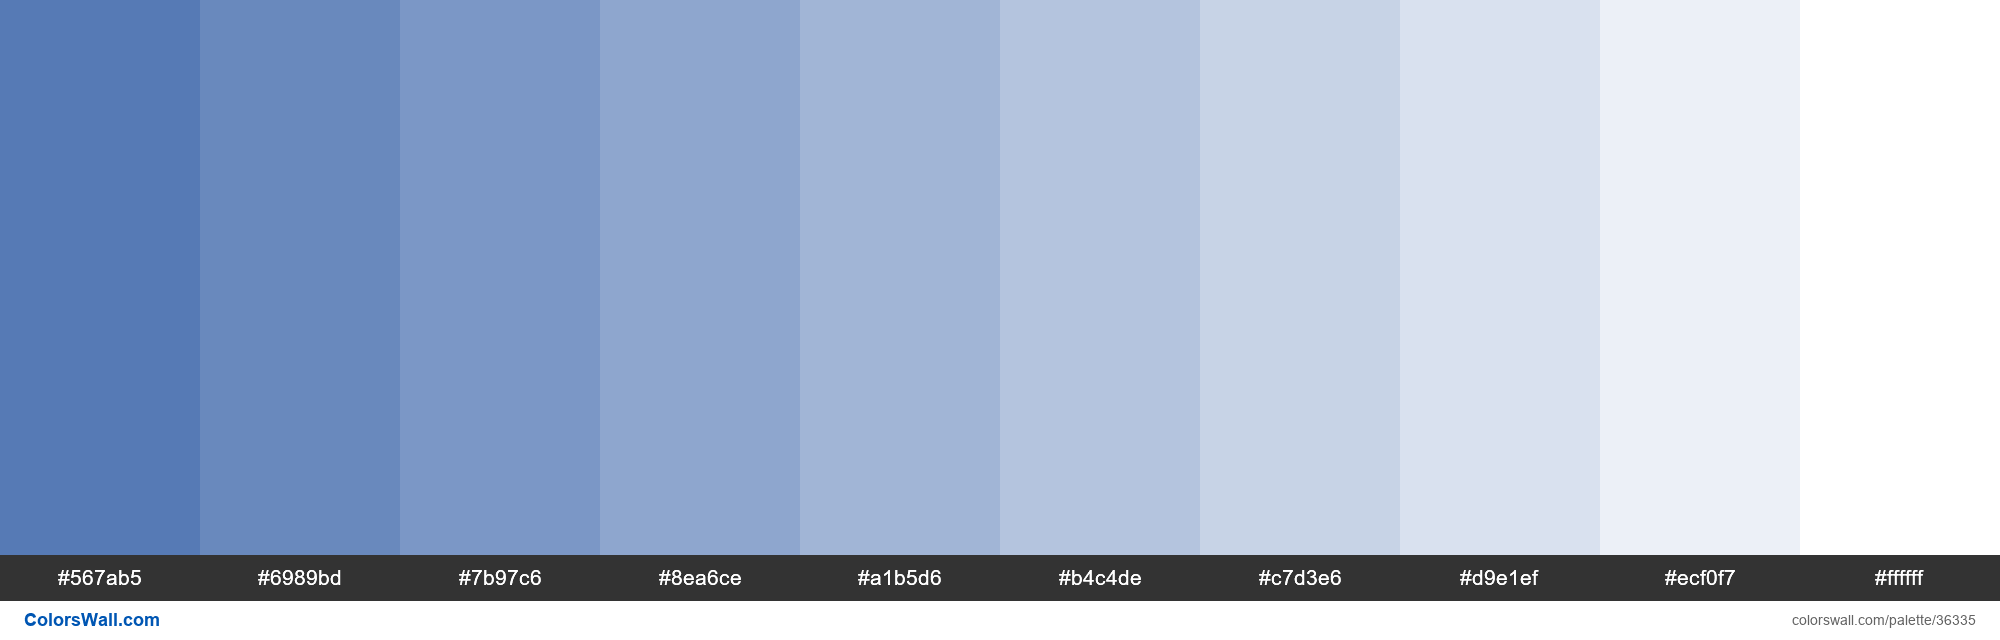 Tints XKCD Color french blue #436bad hex - #36335